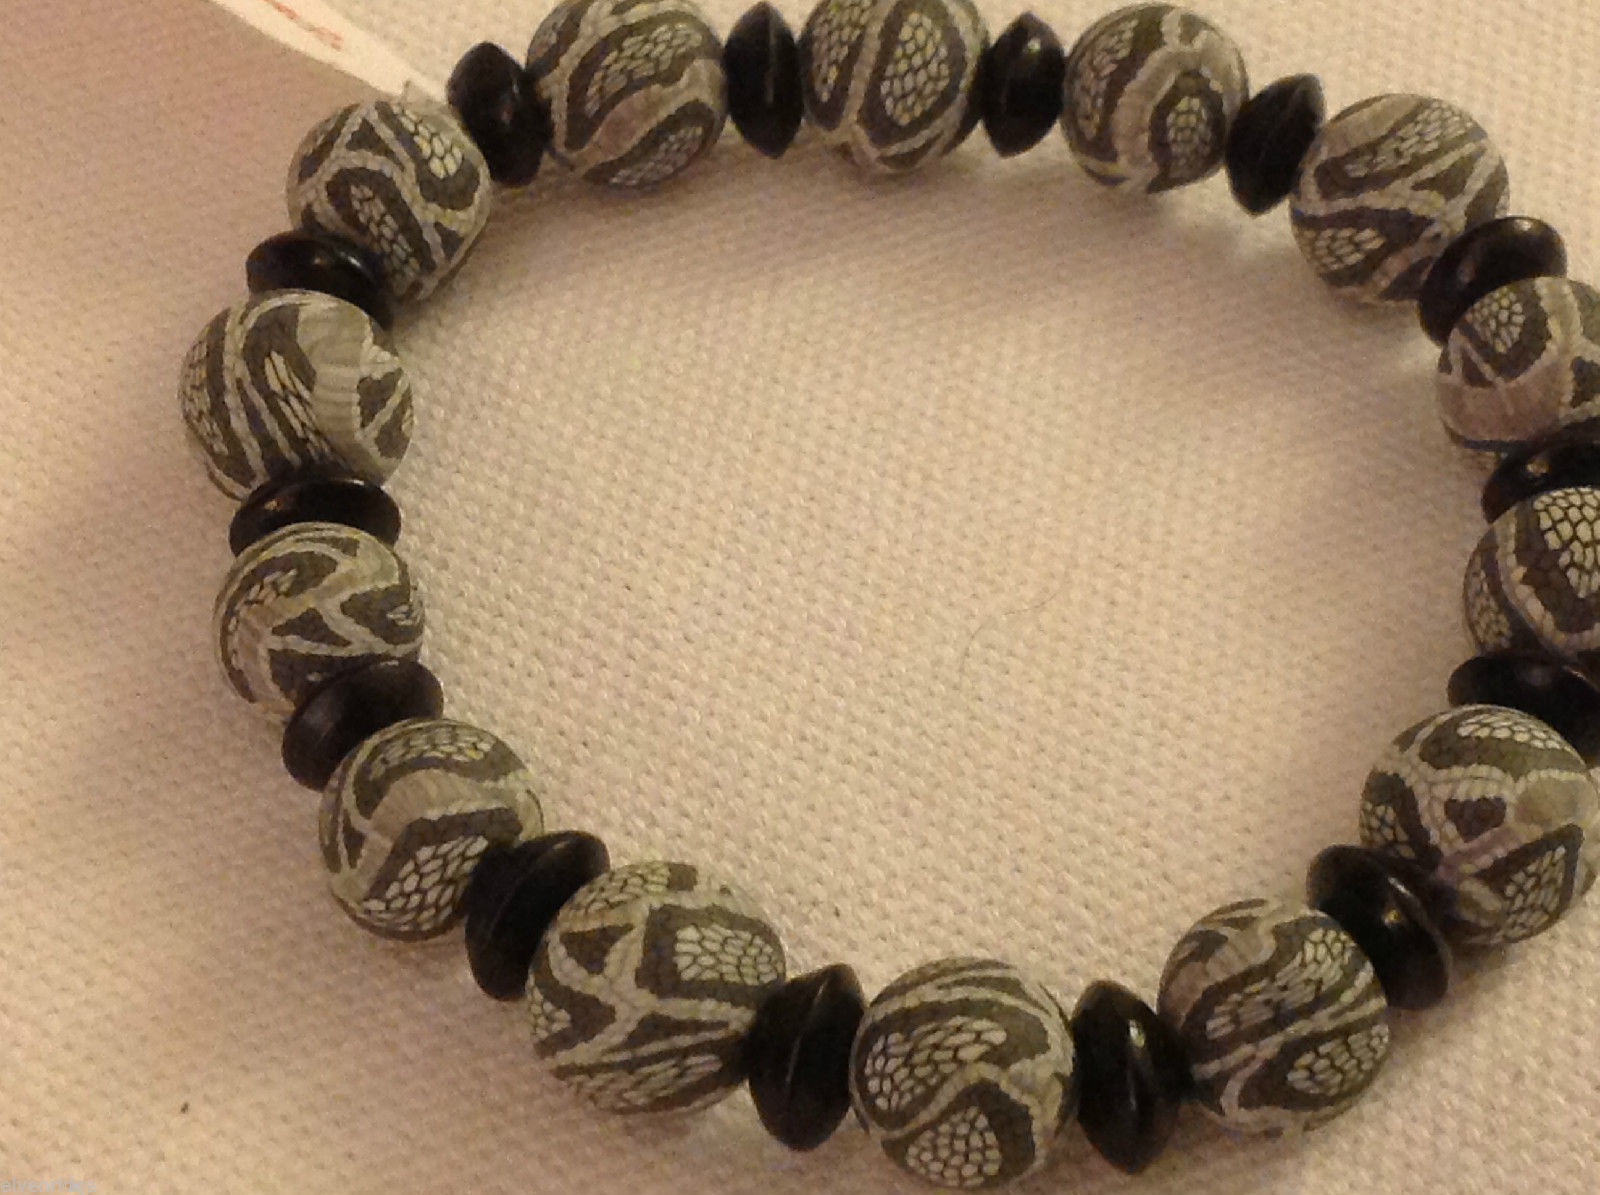 Python snake skin  stretchy bracelet with wood spacers made in USA